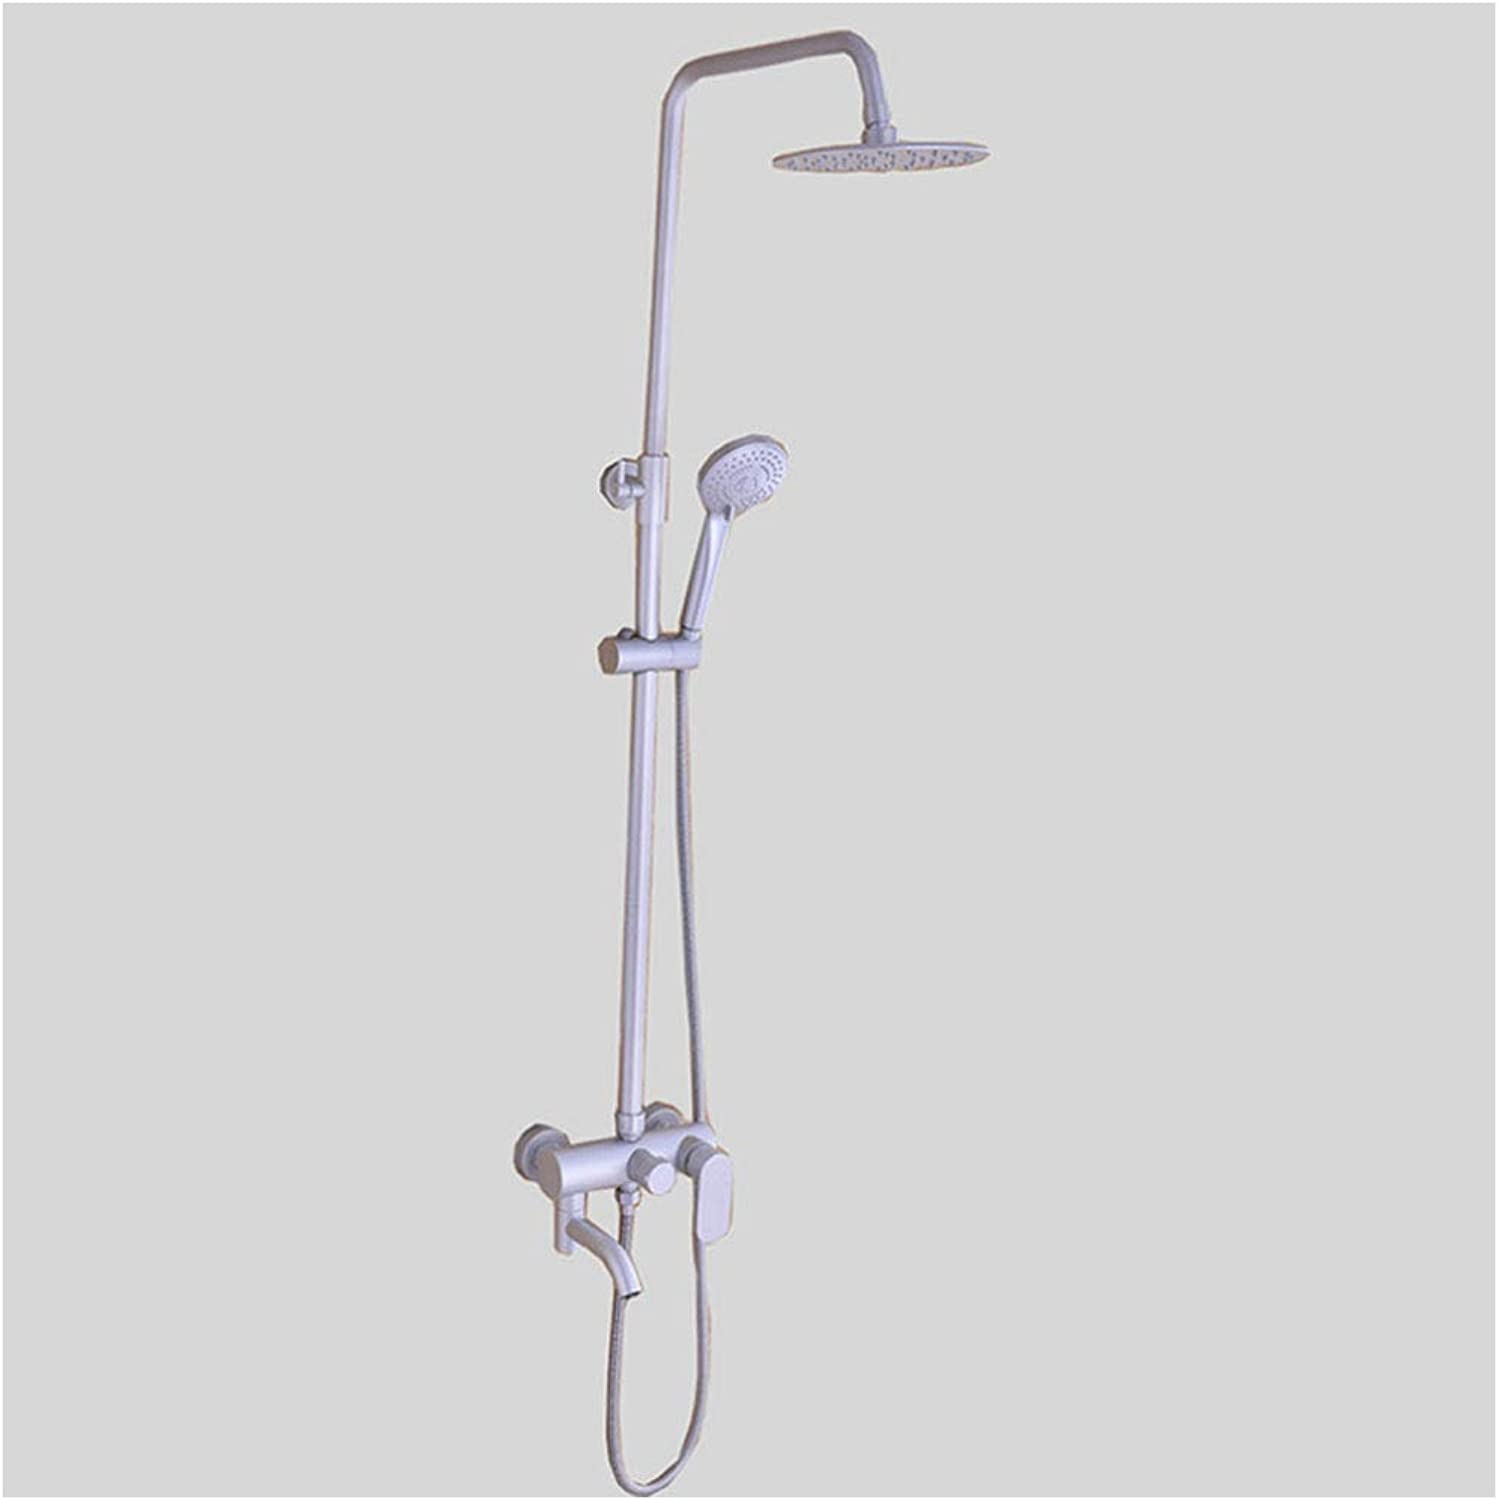 Shower LINGZHIGAN Mixer Set Aluminum alloy Bathroom Luxury Wall Mounted Rainfall Head Combo Set